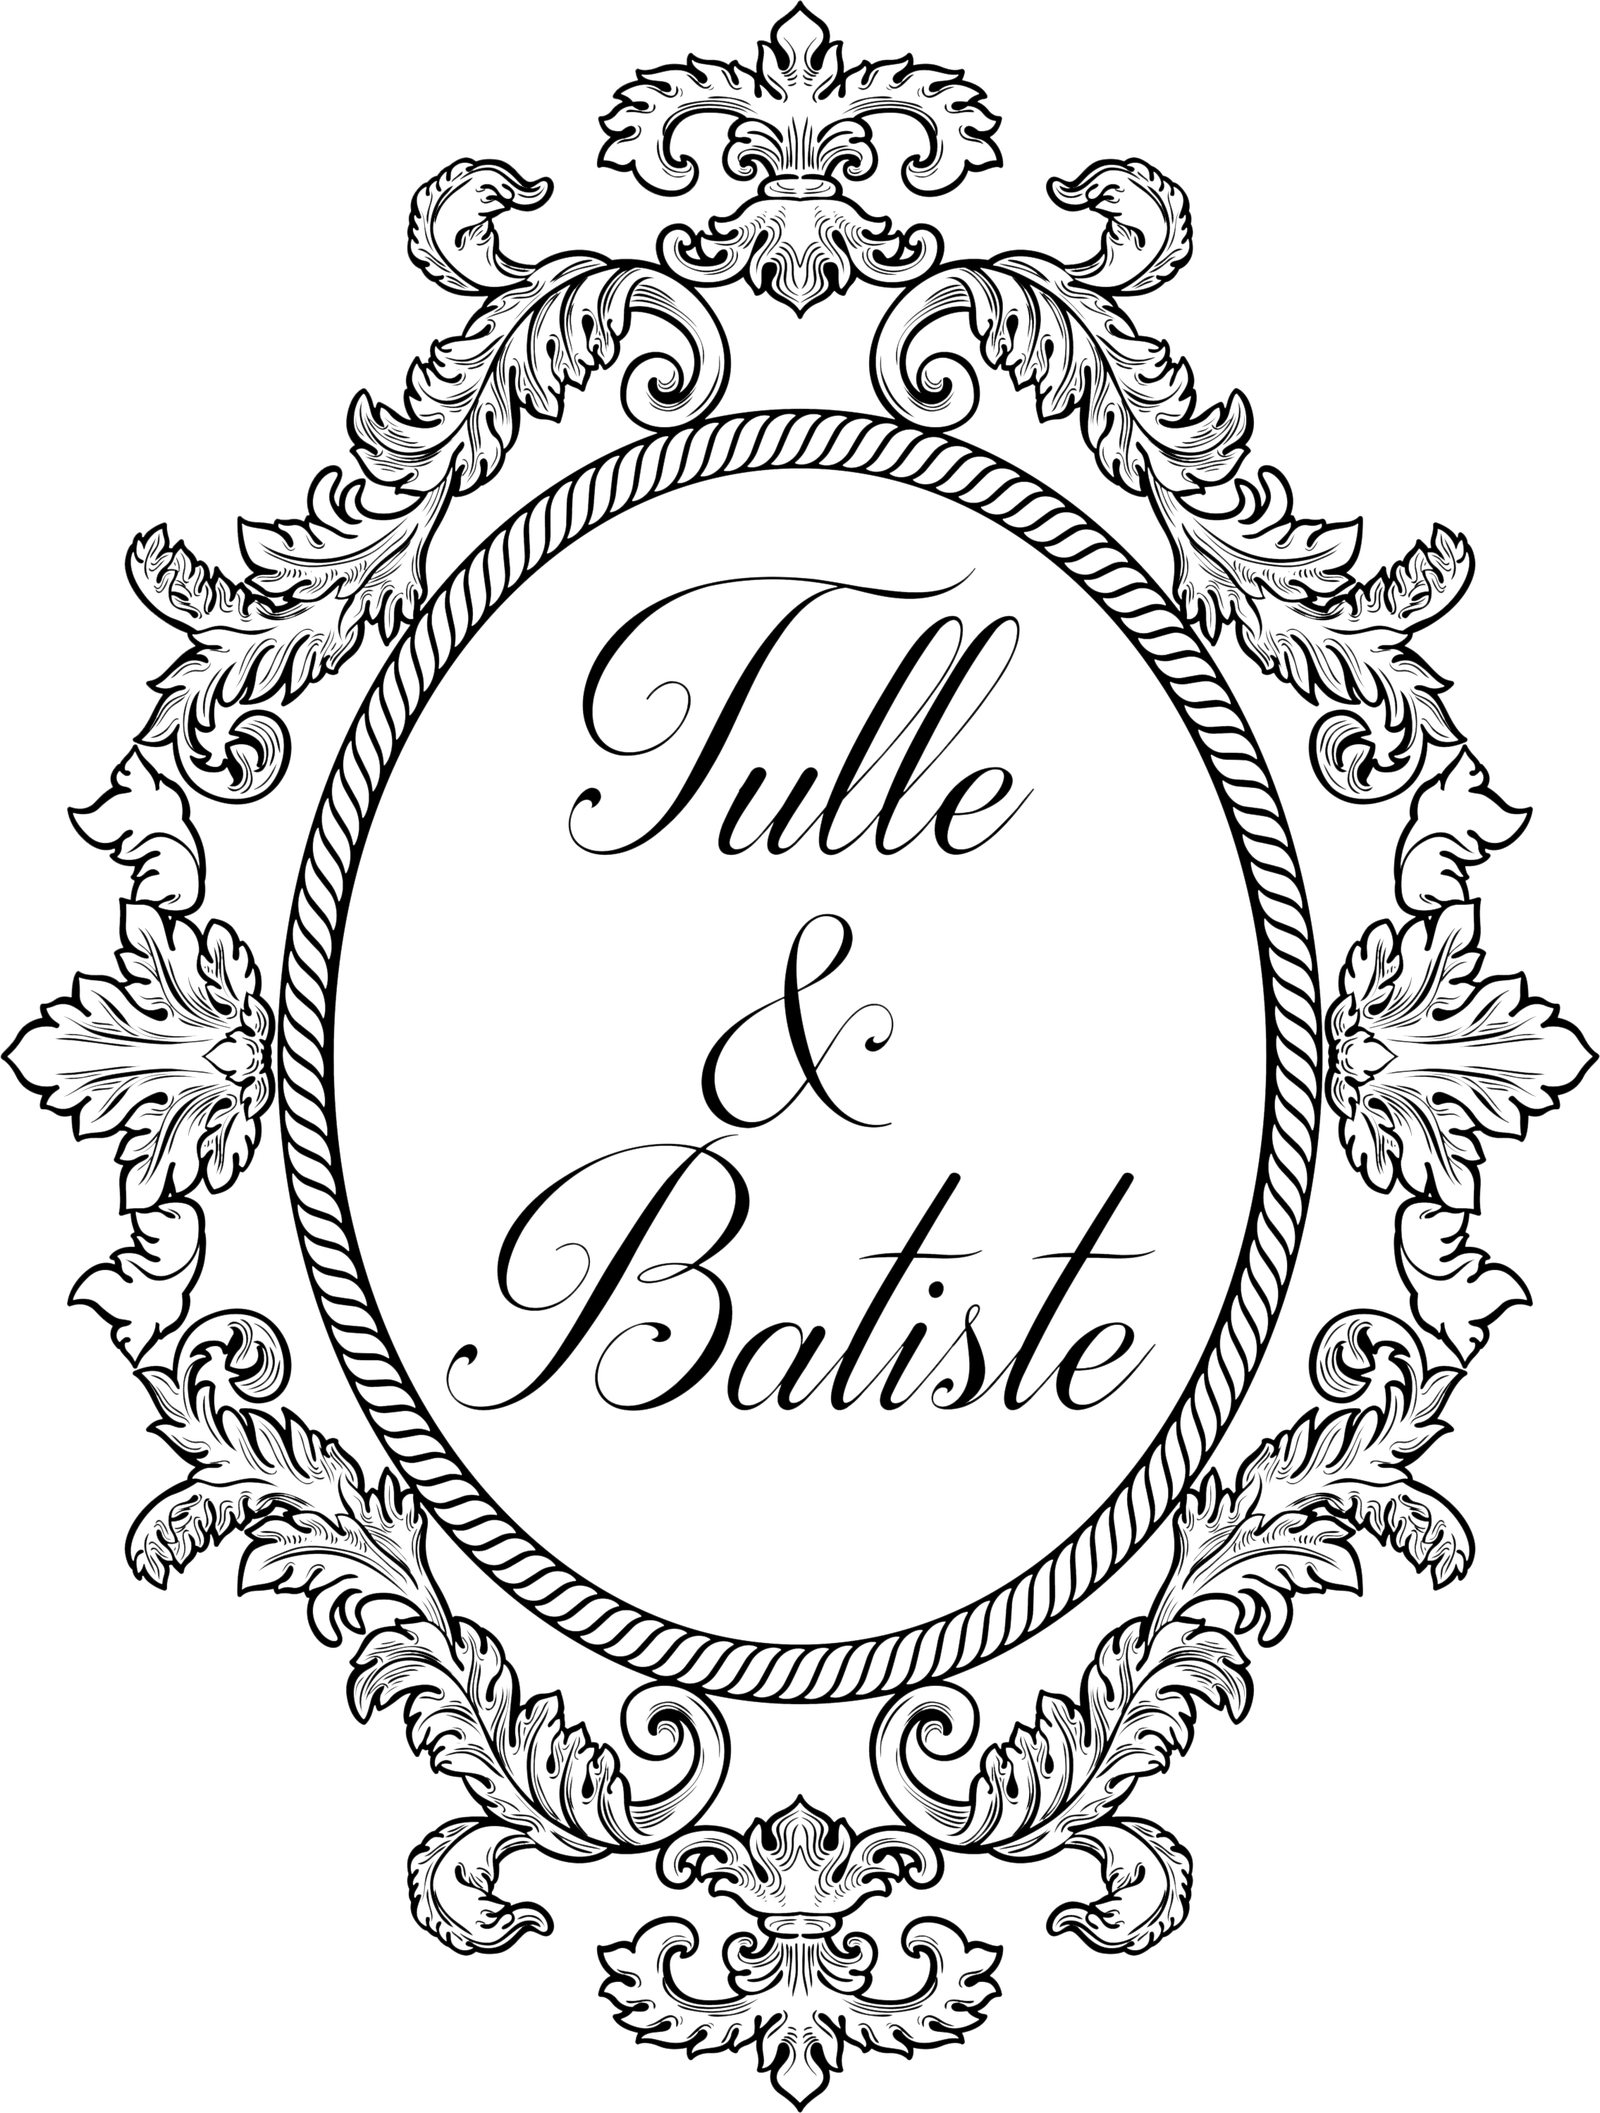 Tulle and Batiste